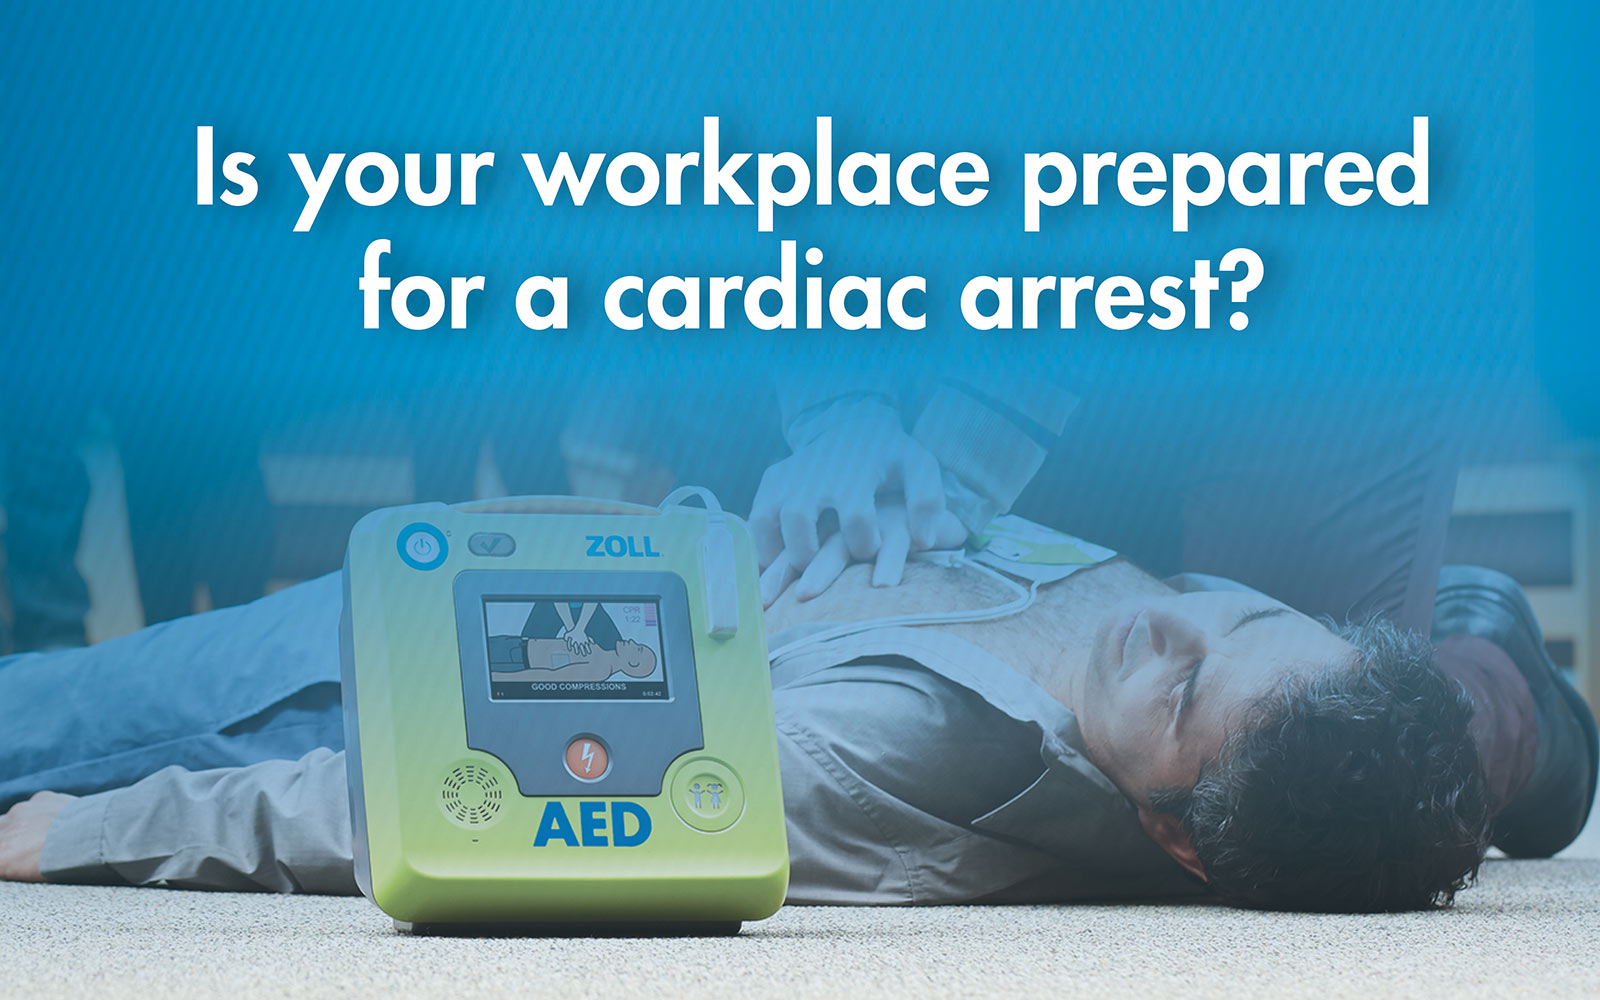 Is your workplace prepared for a cardiac arrest?